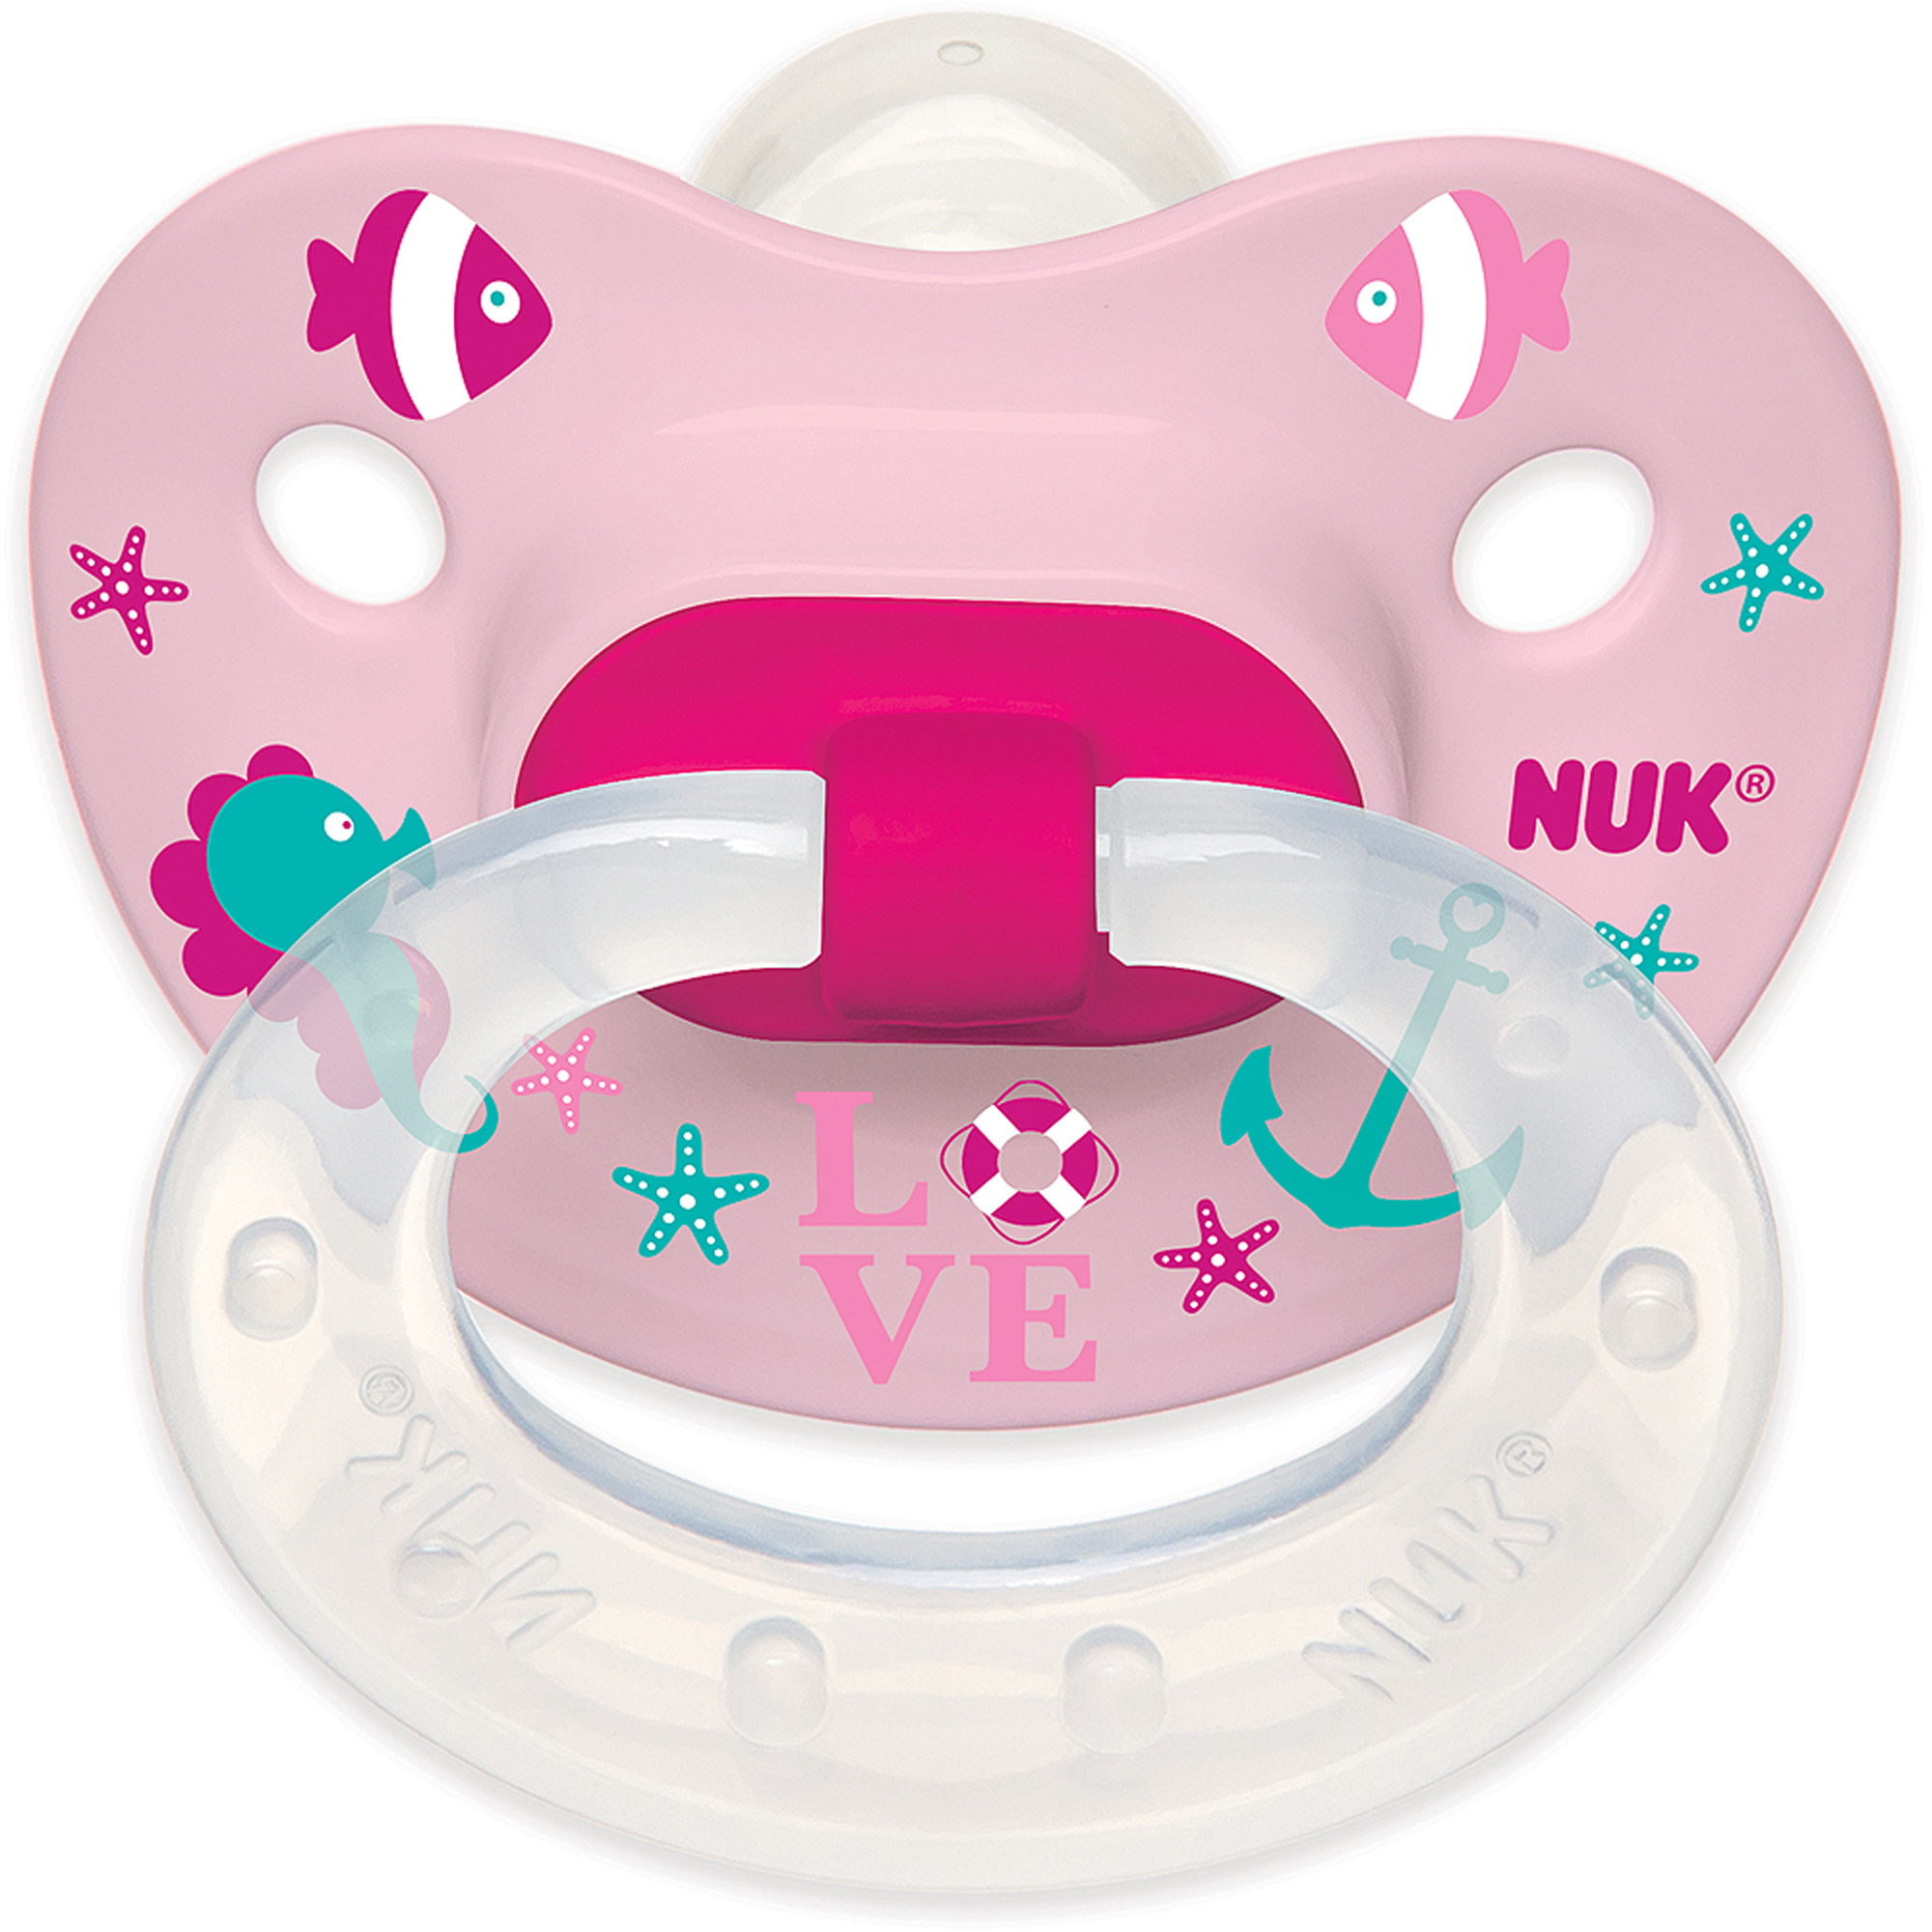 NUK Summer Nautical Silicone Puller Pacifier, Girl Designs, 6-18 Months, 2-Pack